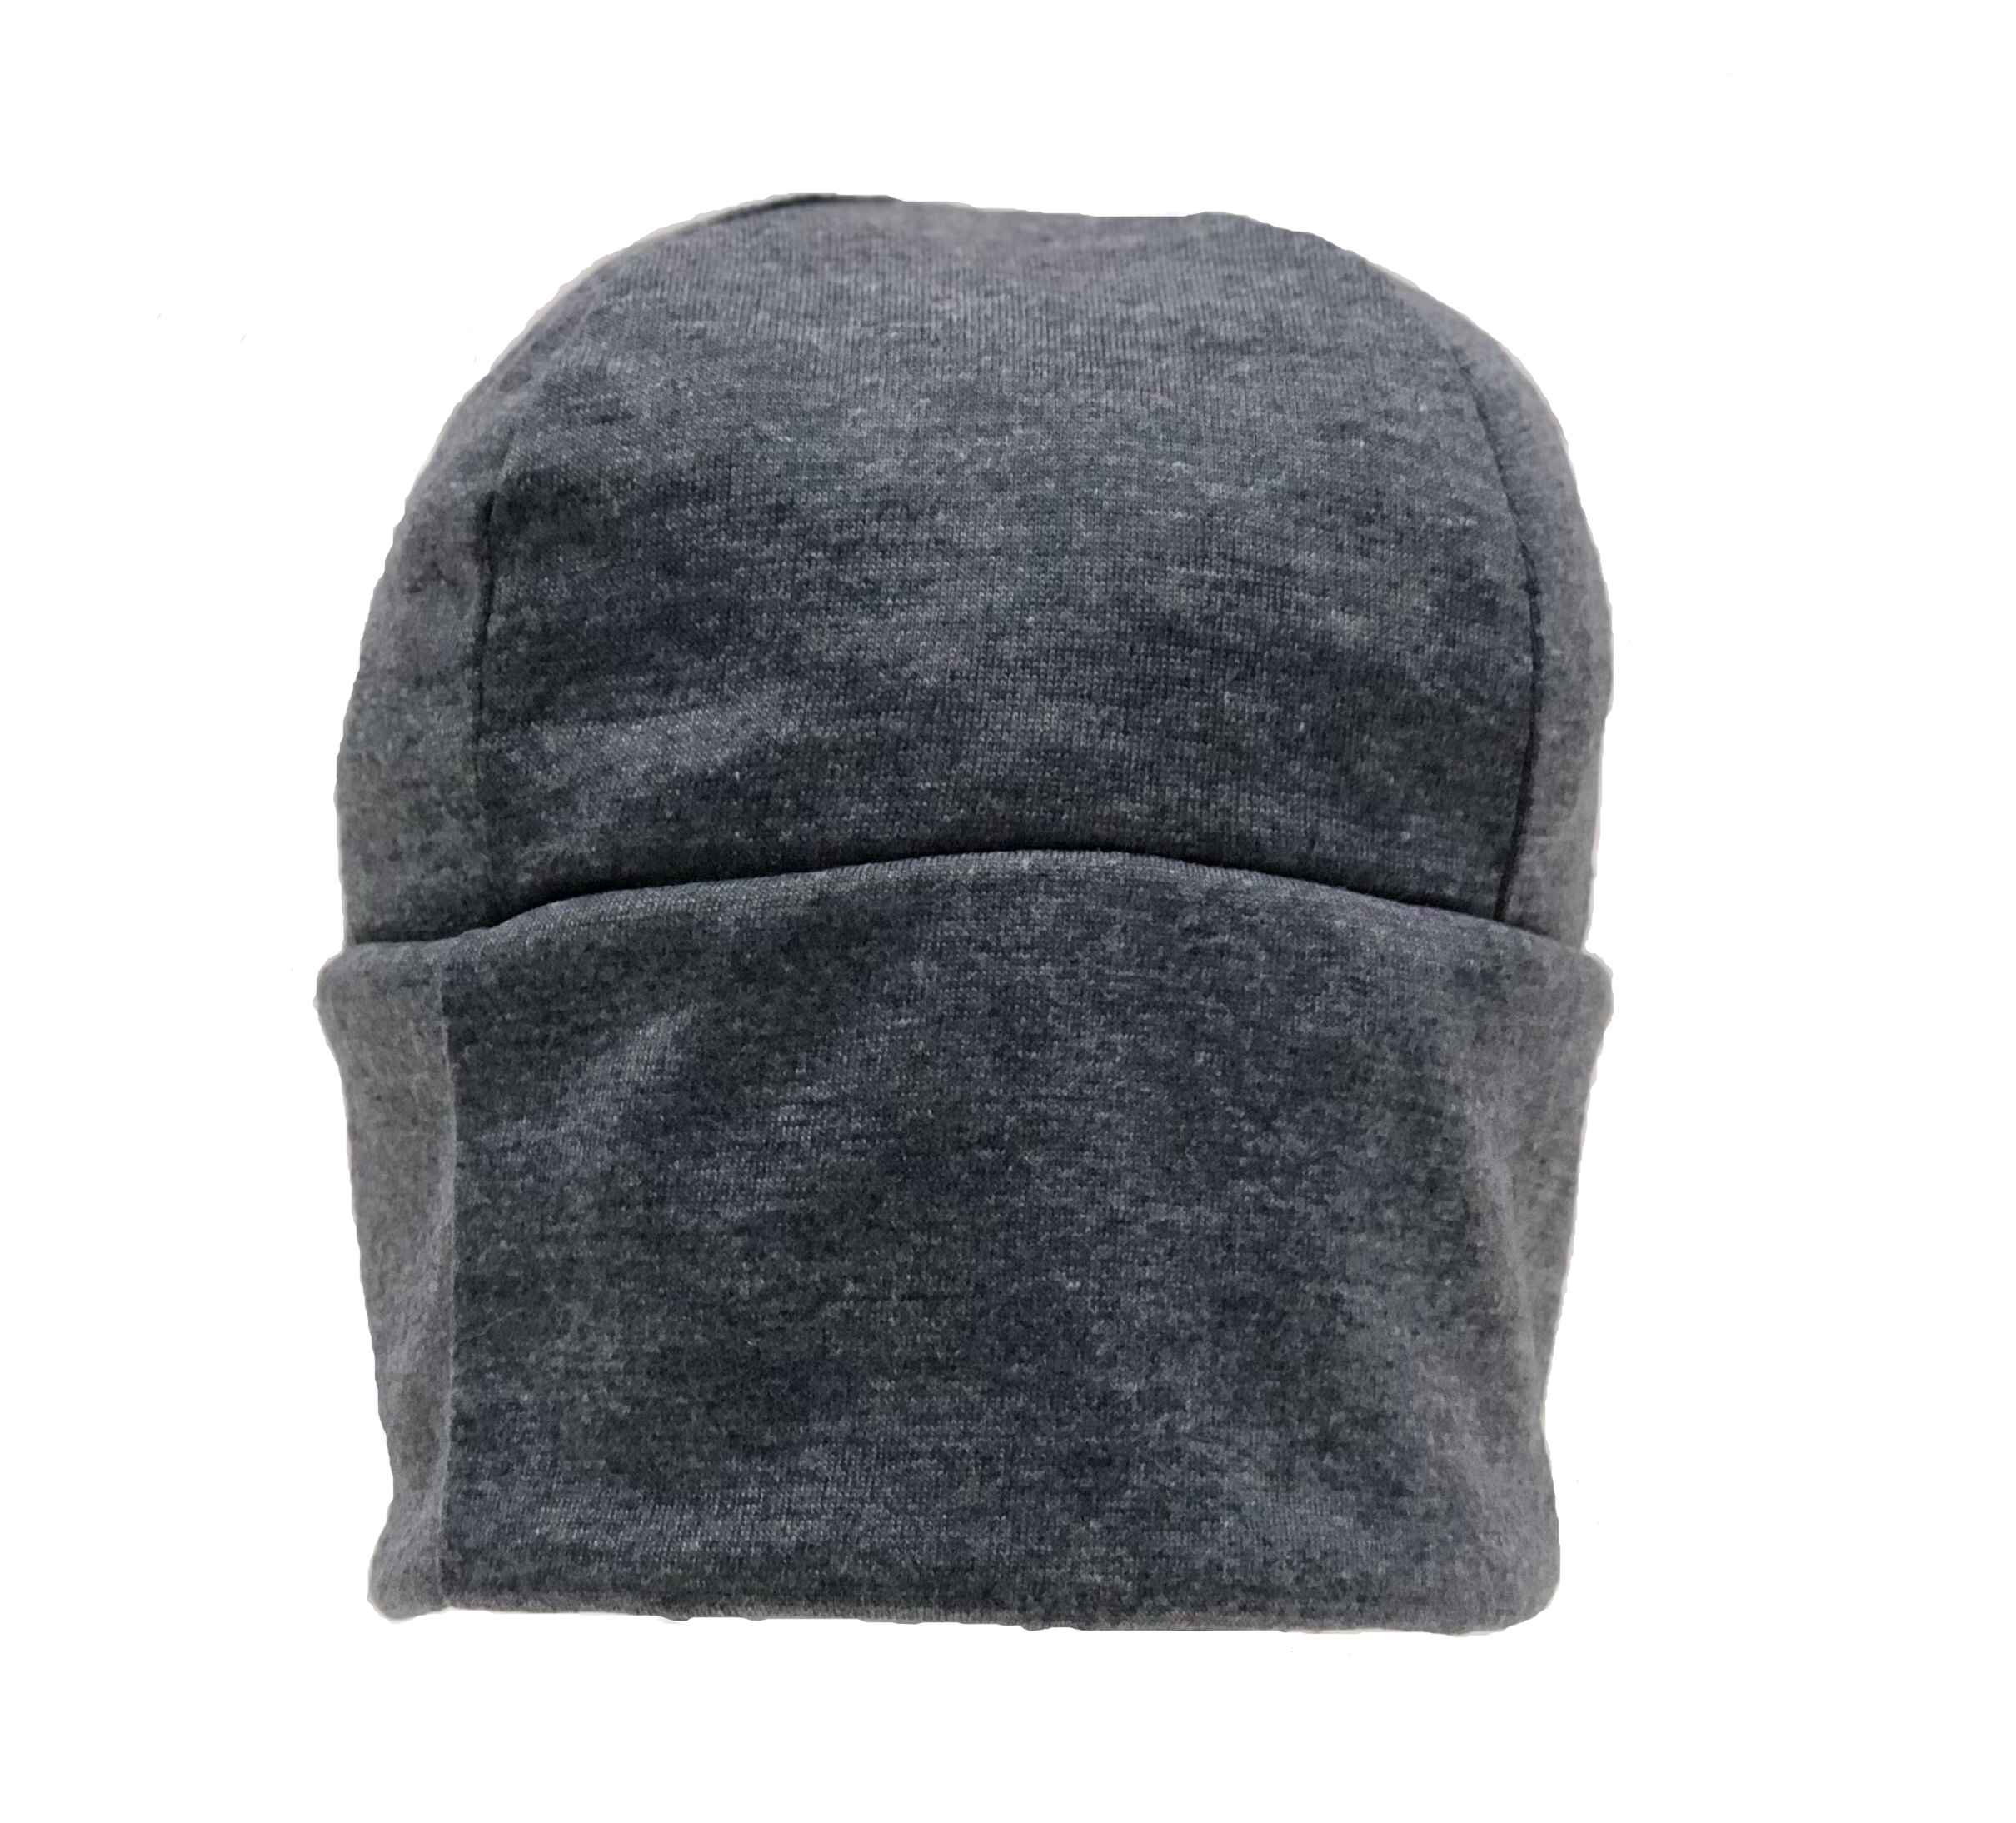 Draper Body Therapy Beanie helps kep your head warm without added bulk.